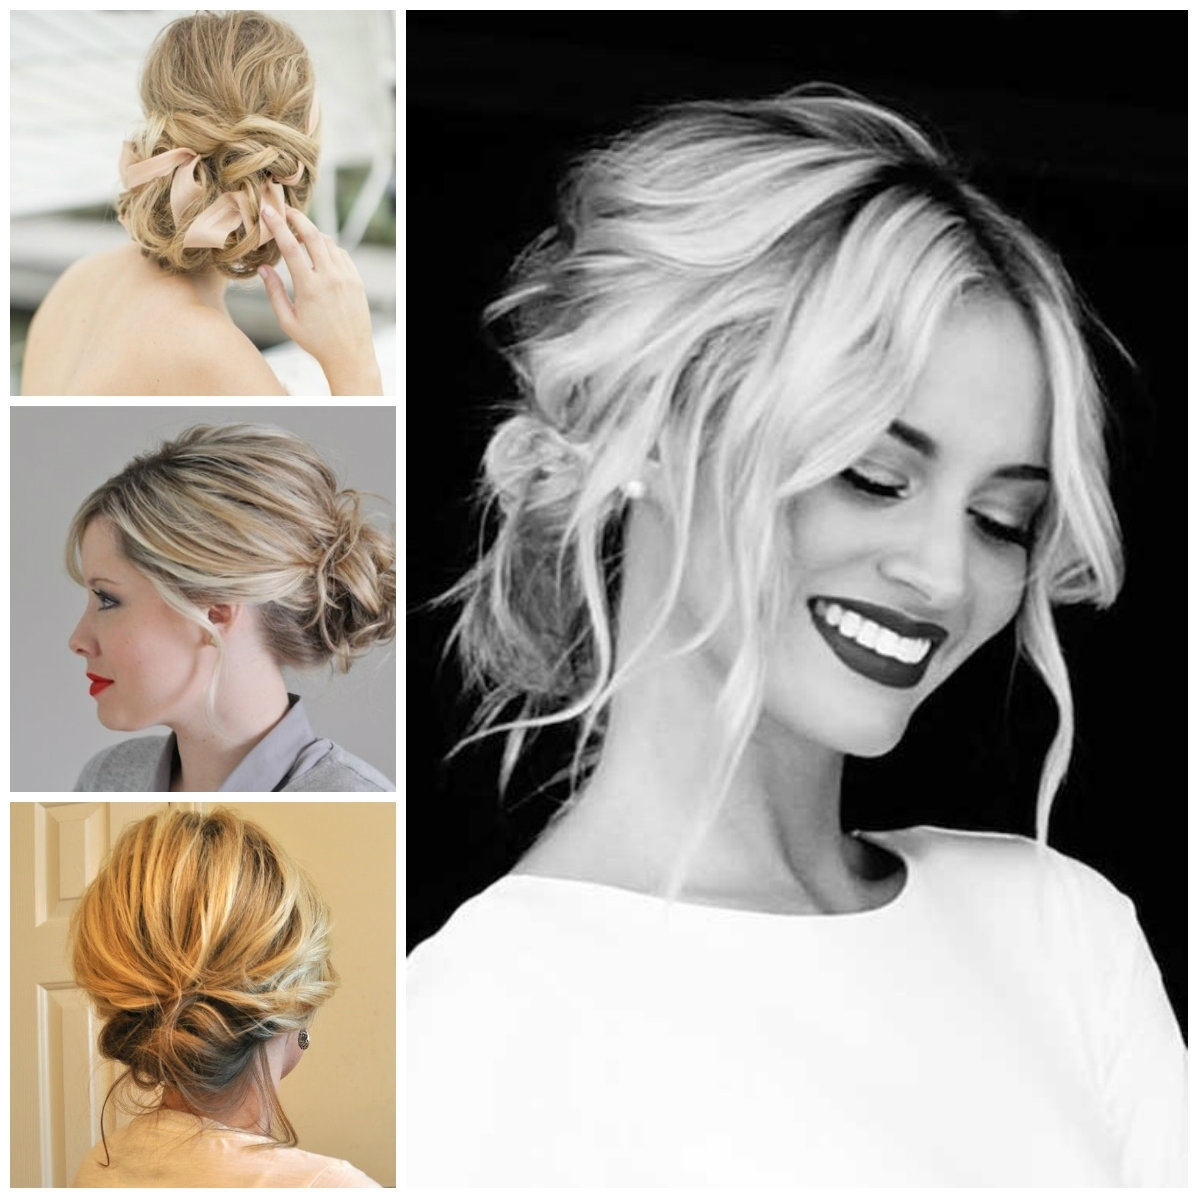 Shoulder Length Hairstyles Updo Tender Updos For Medium Length Hair In Updo Hairstyles With Bangs For Medium Length Hair (View 6 of 15)